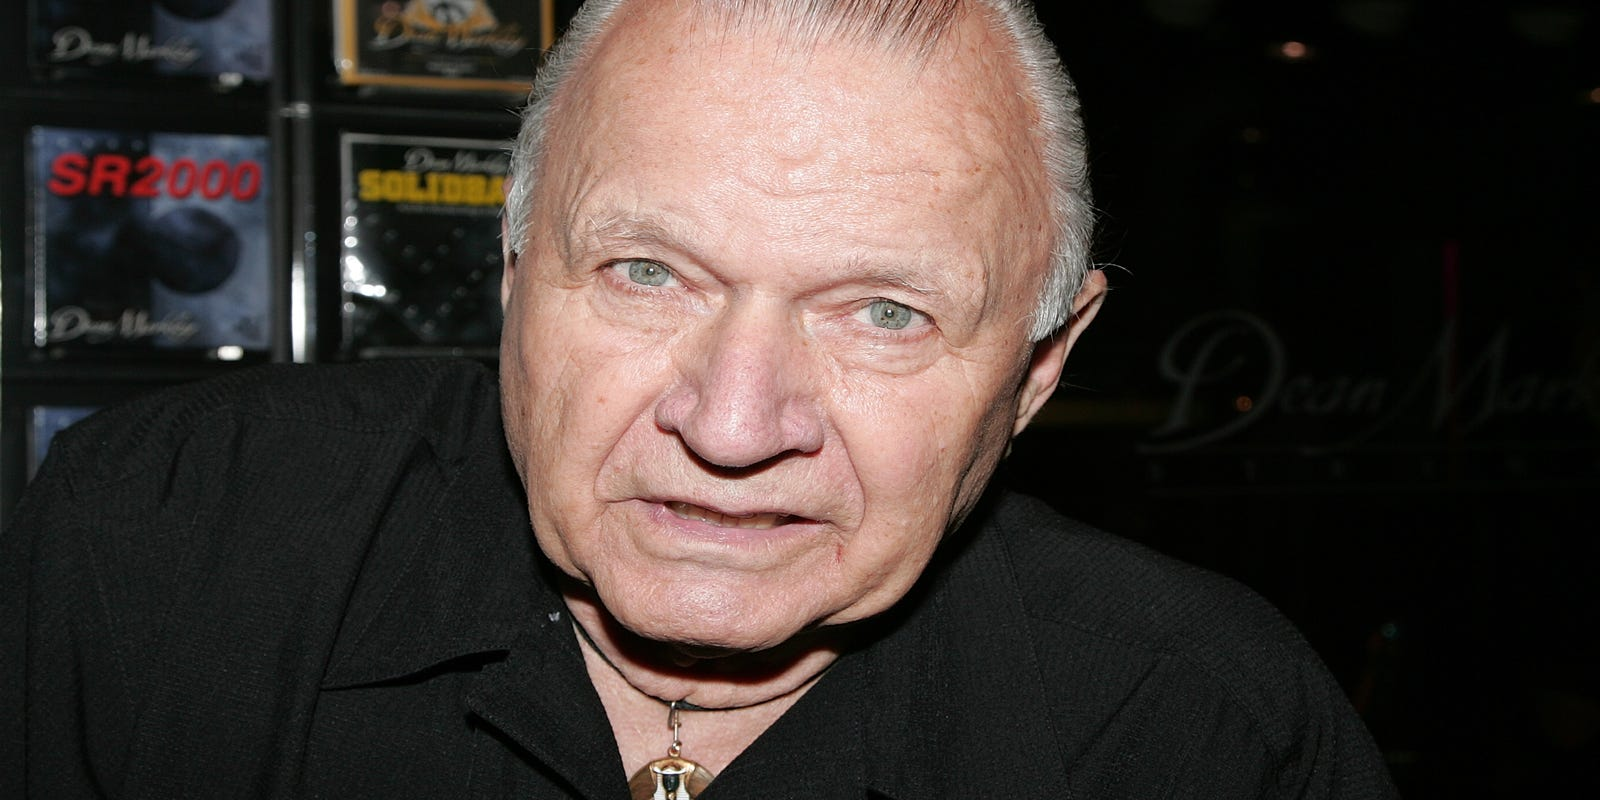 Dick Dale, 'King of the Surf Guitar, dies at 81